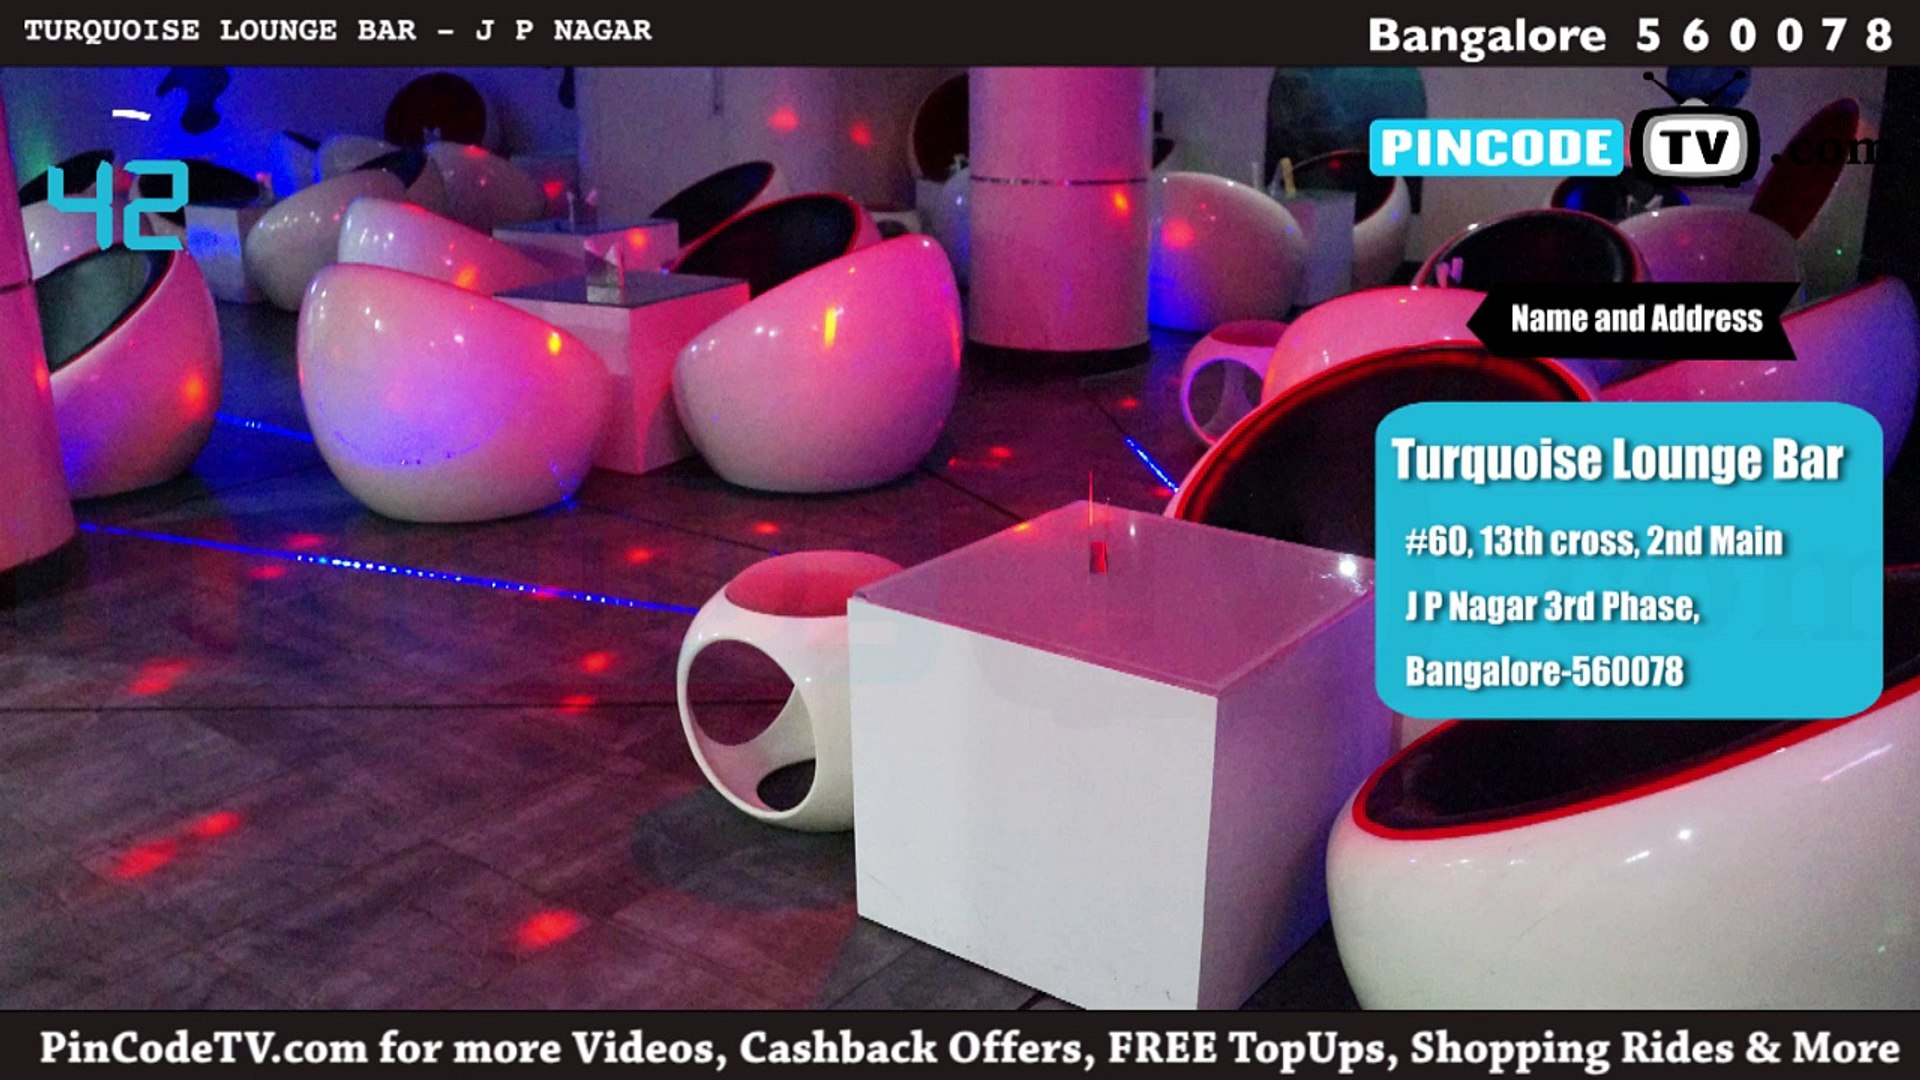 PinCodeTV.com - Turquoise Lounge Bar [60 Seconds] Lounge bar in J P Nagar - Bangalore - Pin Code 560